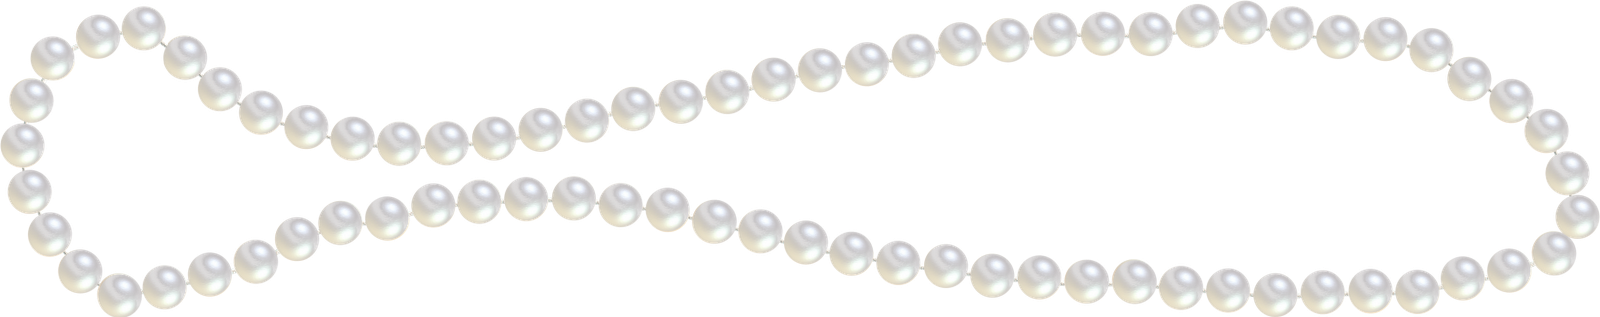 Necklace clipart small black pearl. Pearls png images free